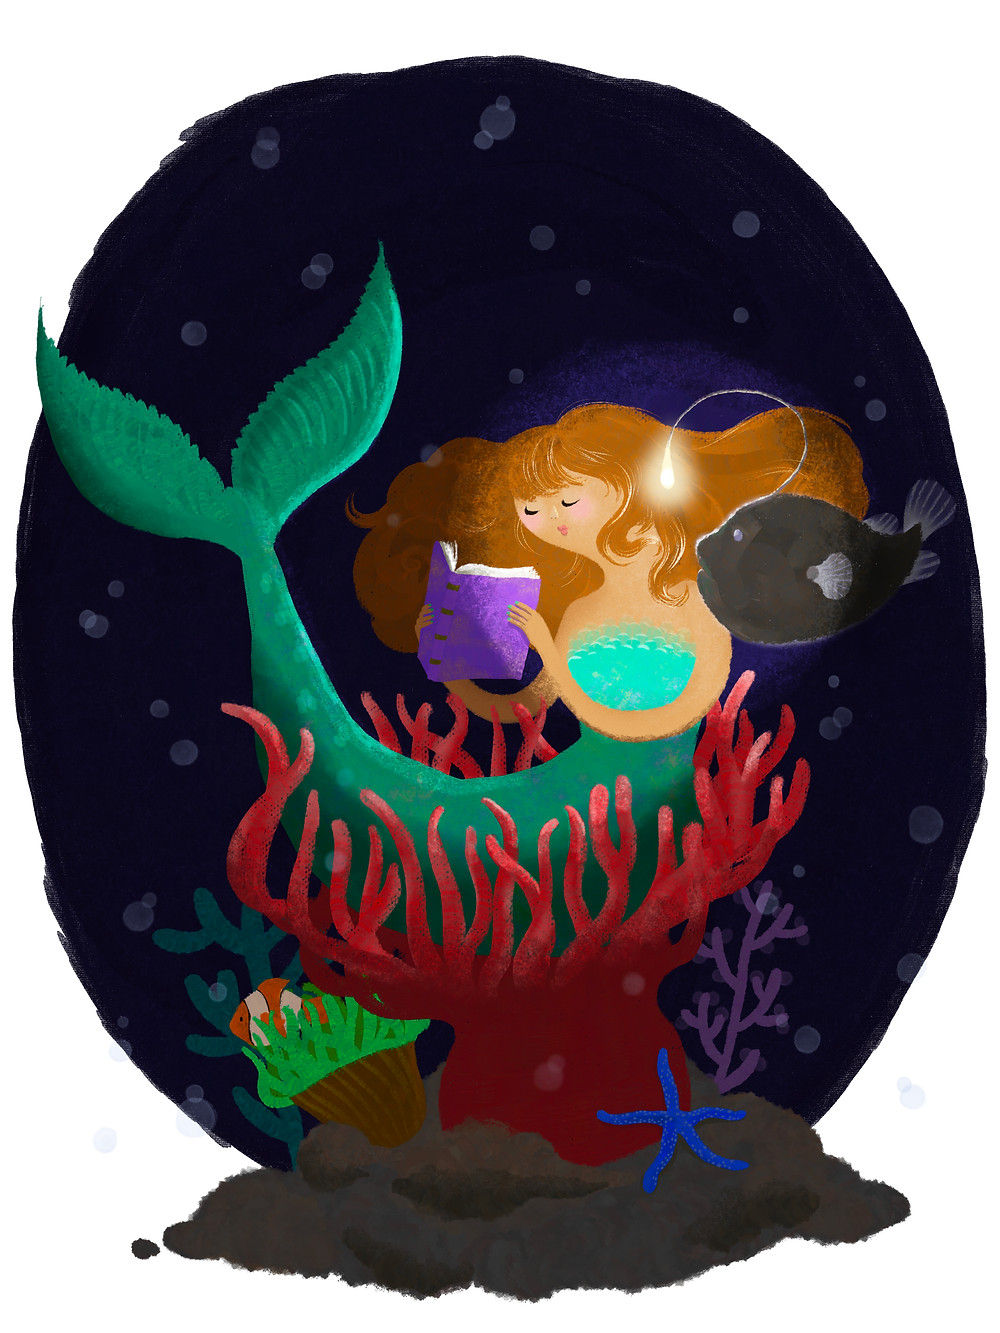 Auburn-haired mermaid sitting in a nest of red anemone tentacles is reading from a purple-covered book with the light of an angler fish over her shoulder. Her tail is turquoise and there is a clown fish and blue starfish beneath them. The background is dark blue and brightens at the center.